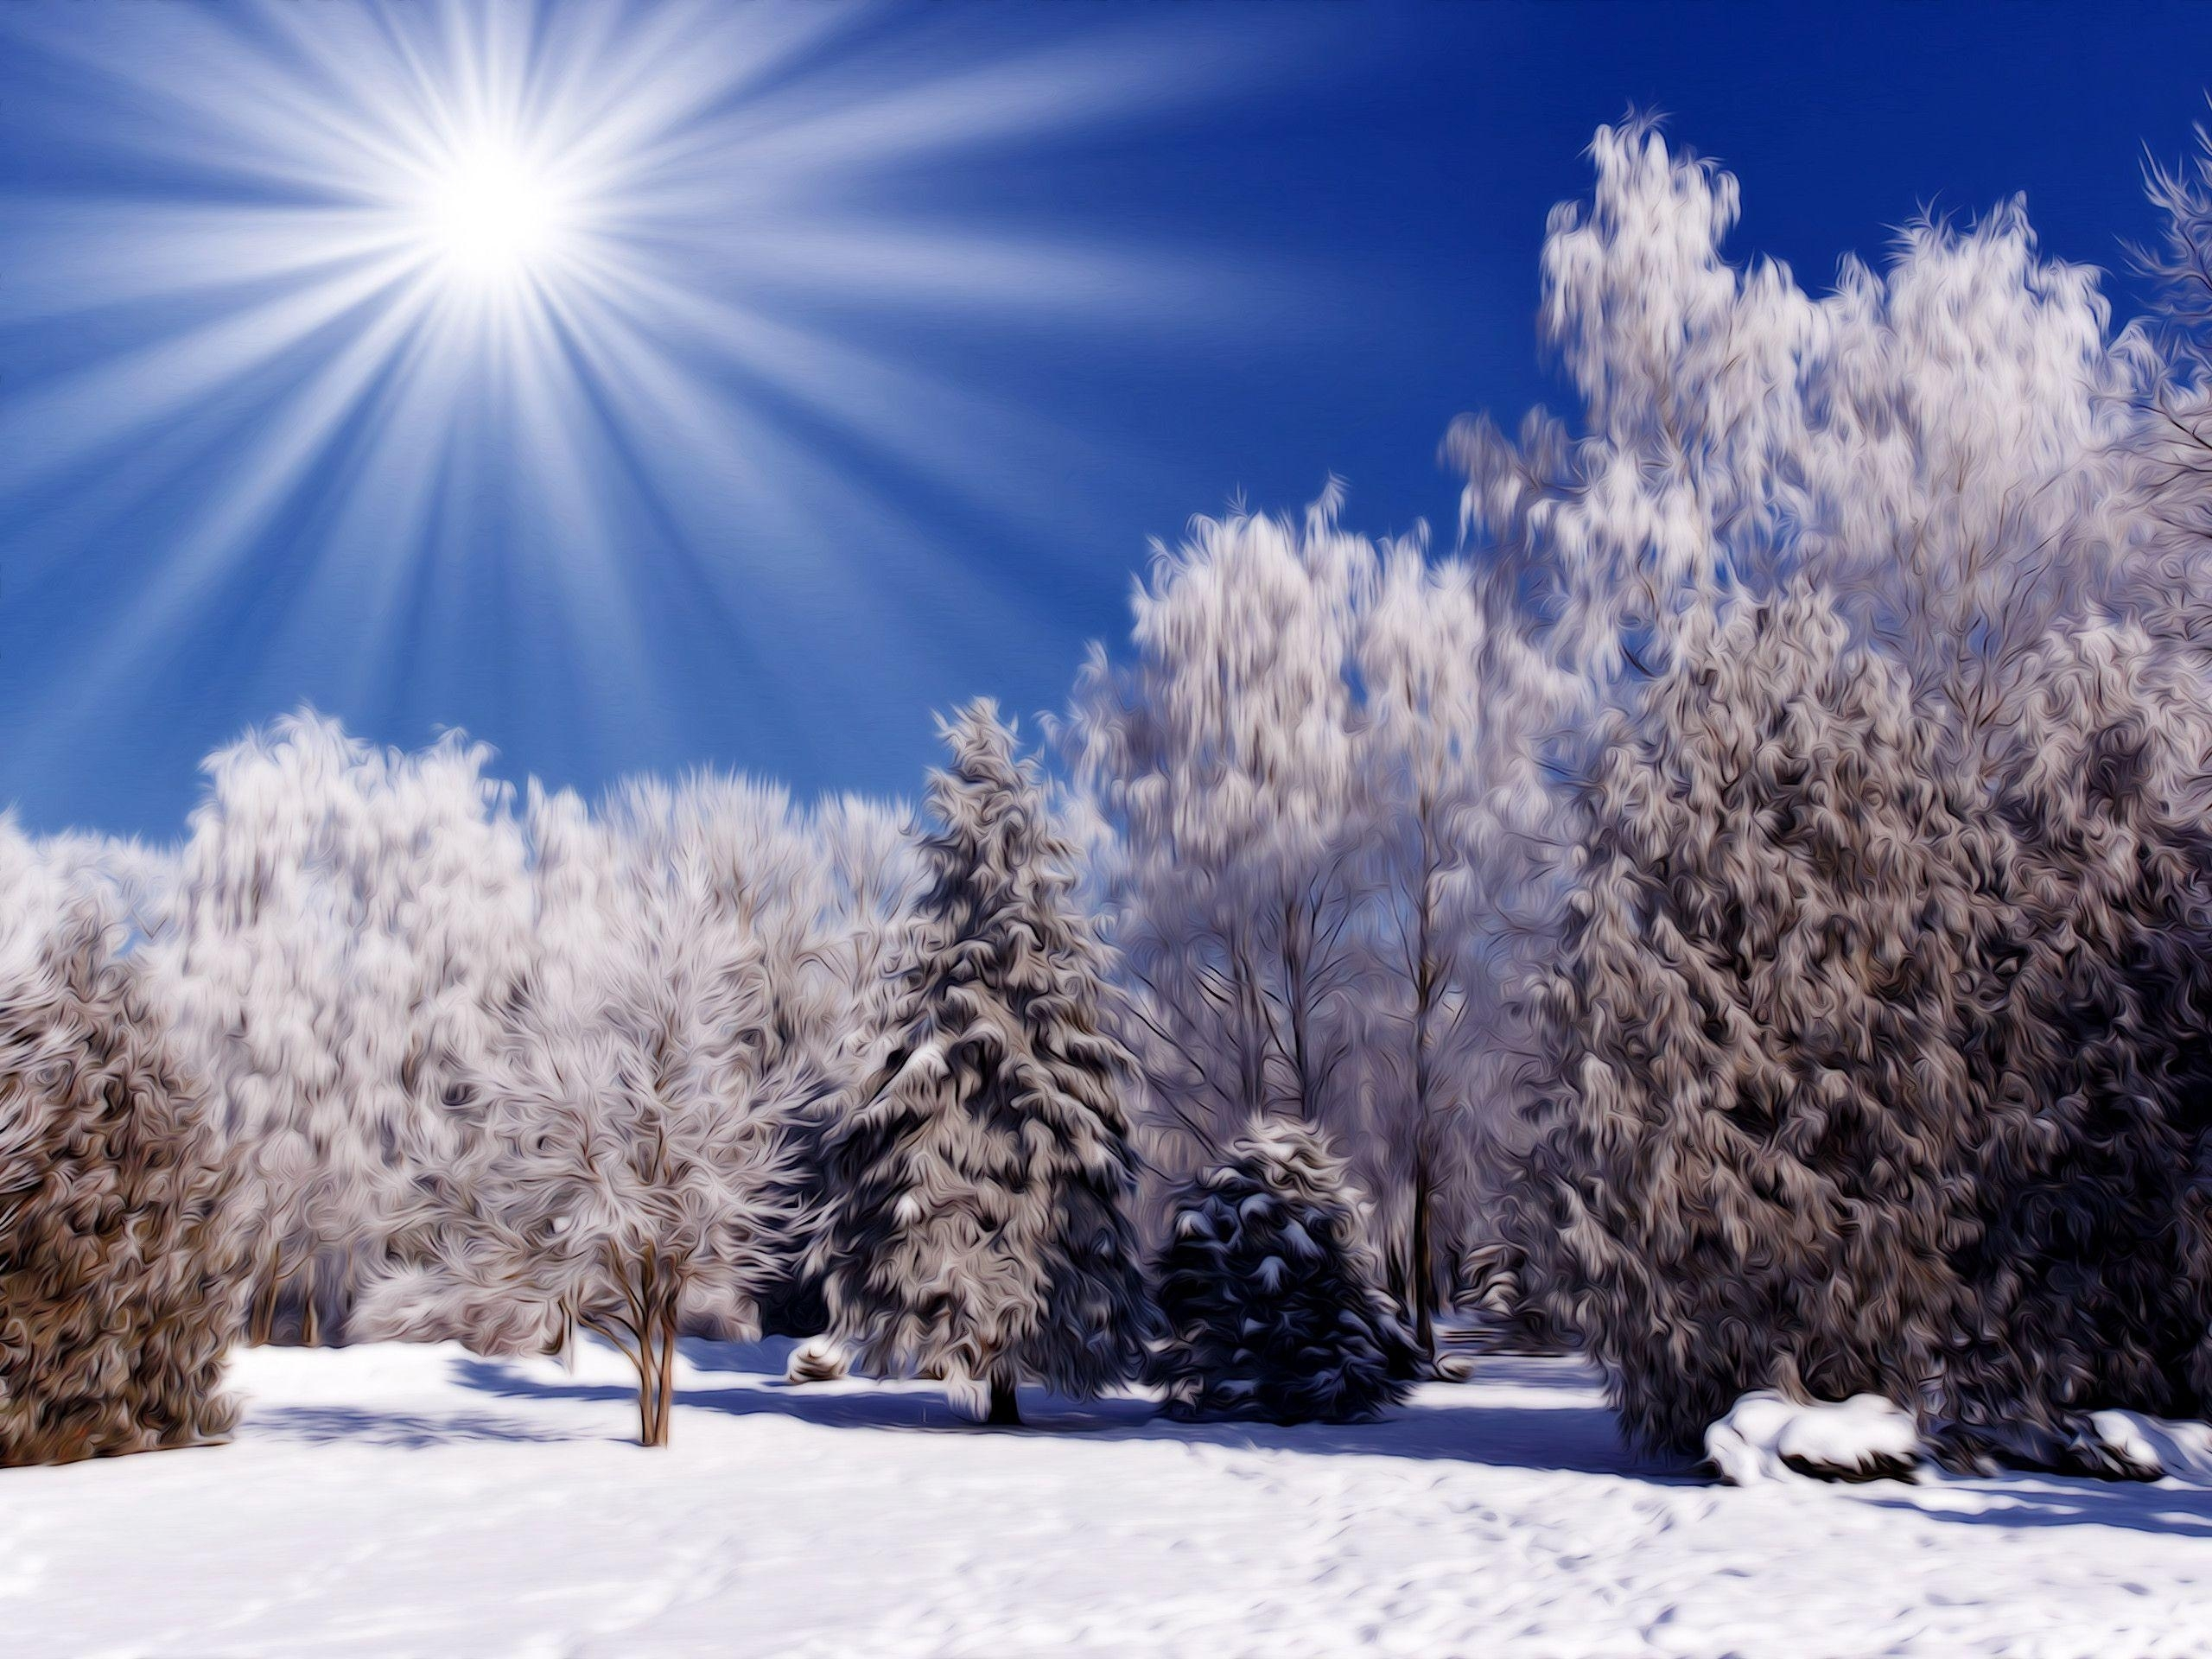 winter snow scenes wallpapers - wallpaper cave